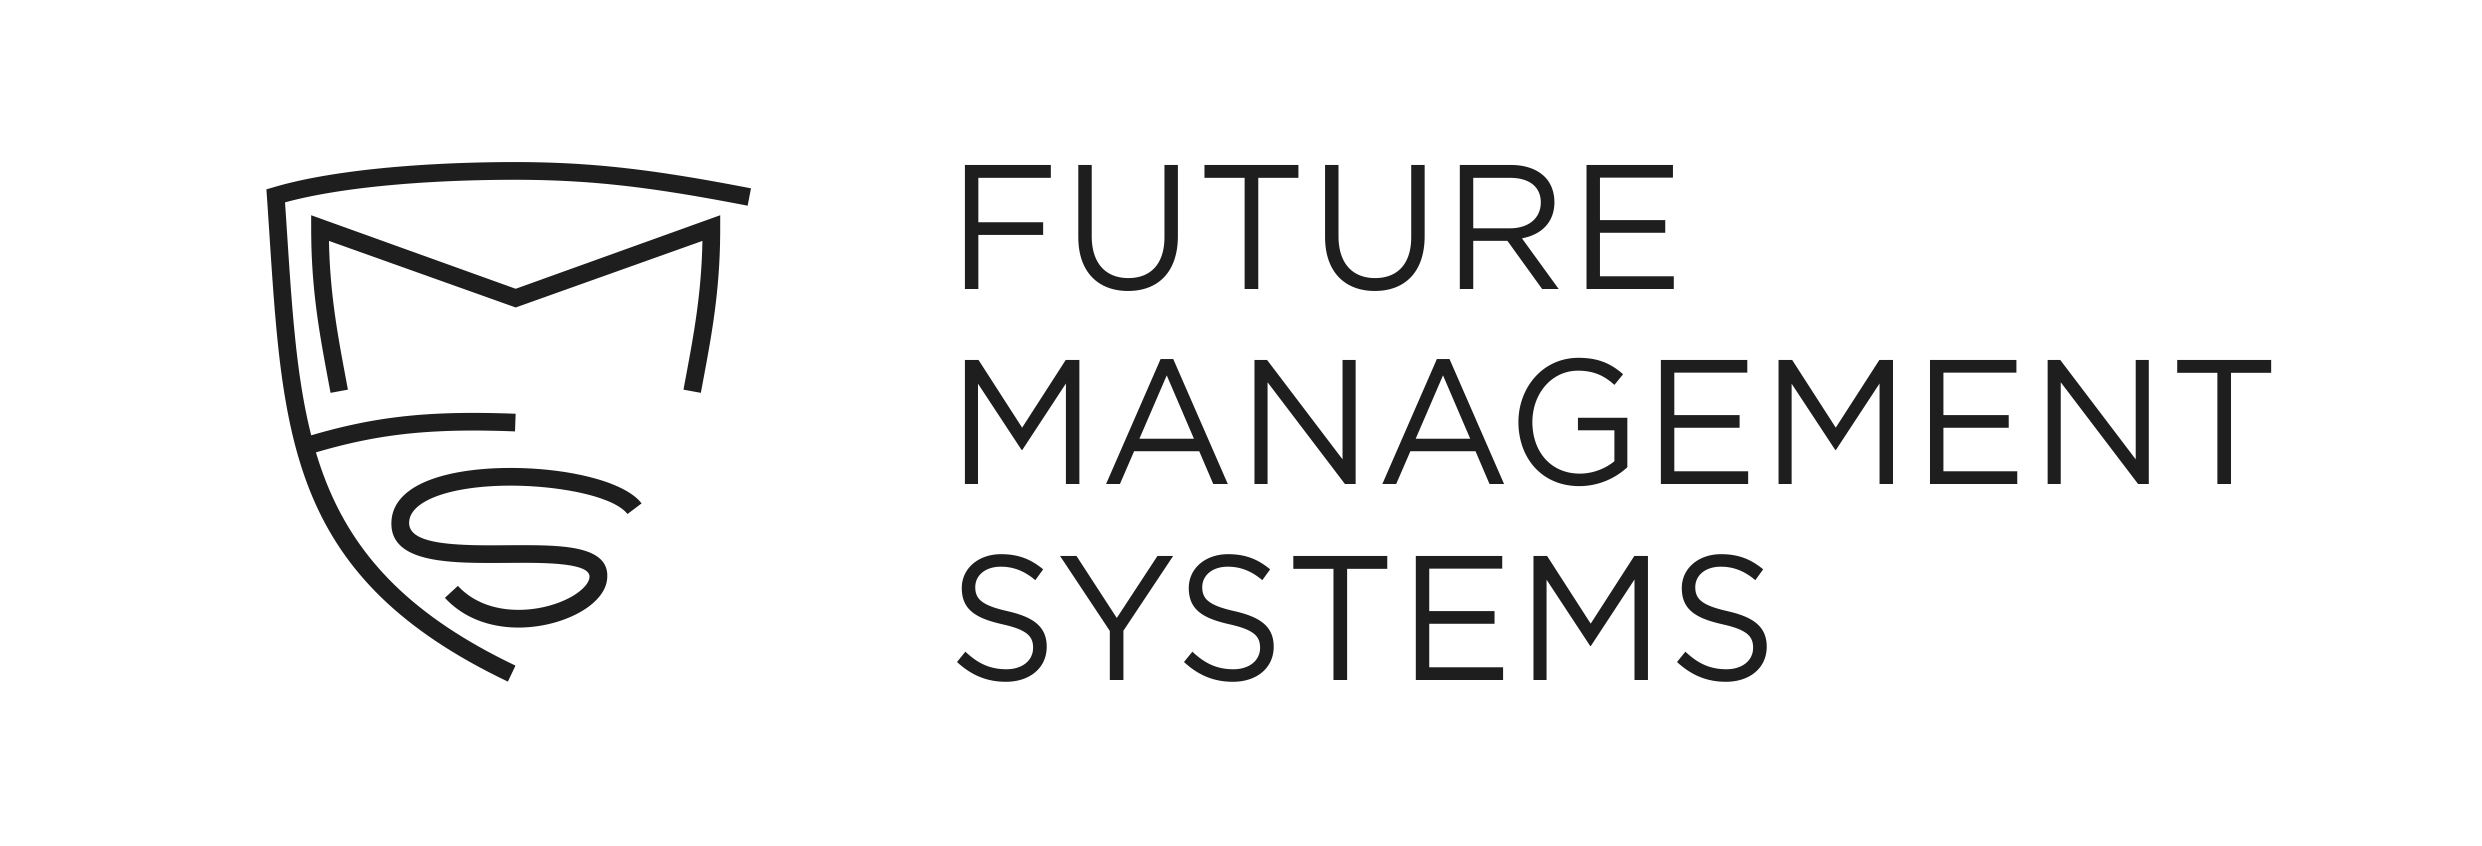 Future Management Systems LTD